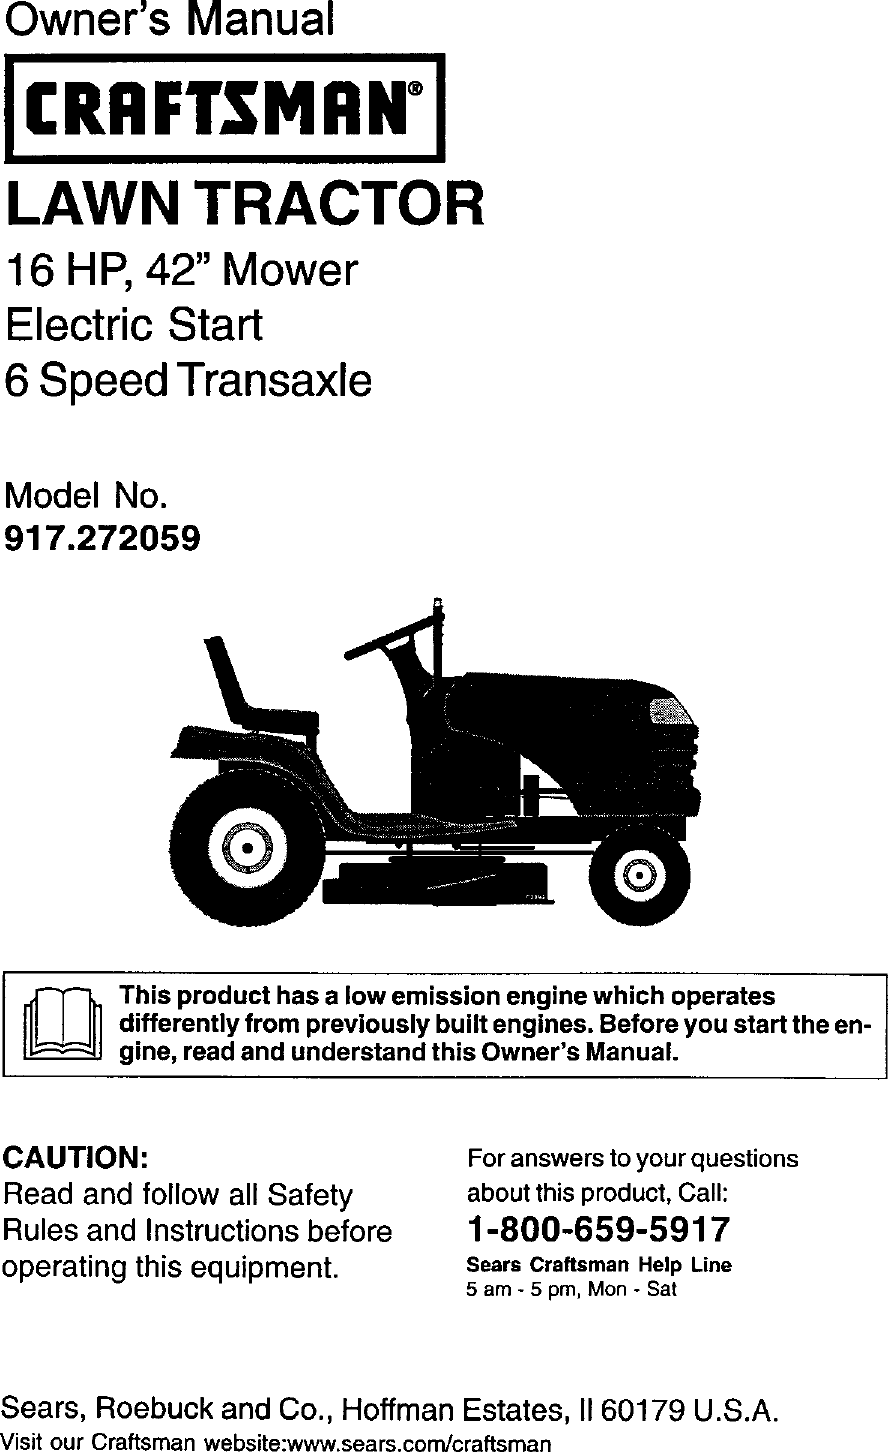 Craftsman Lawn Mower Electrical Schematics 917272059 User Manual Tractor Manuals And Guides L0205012